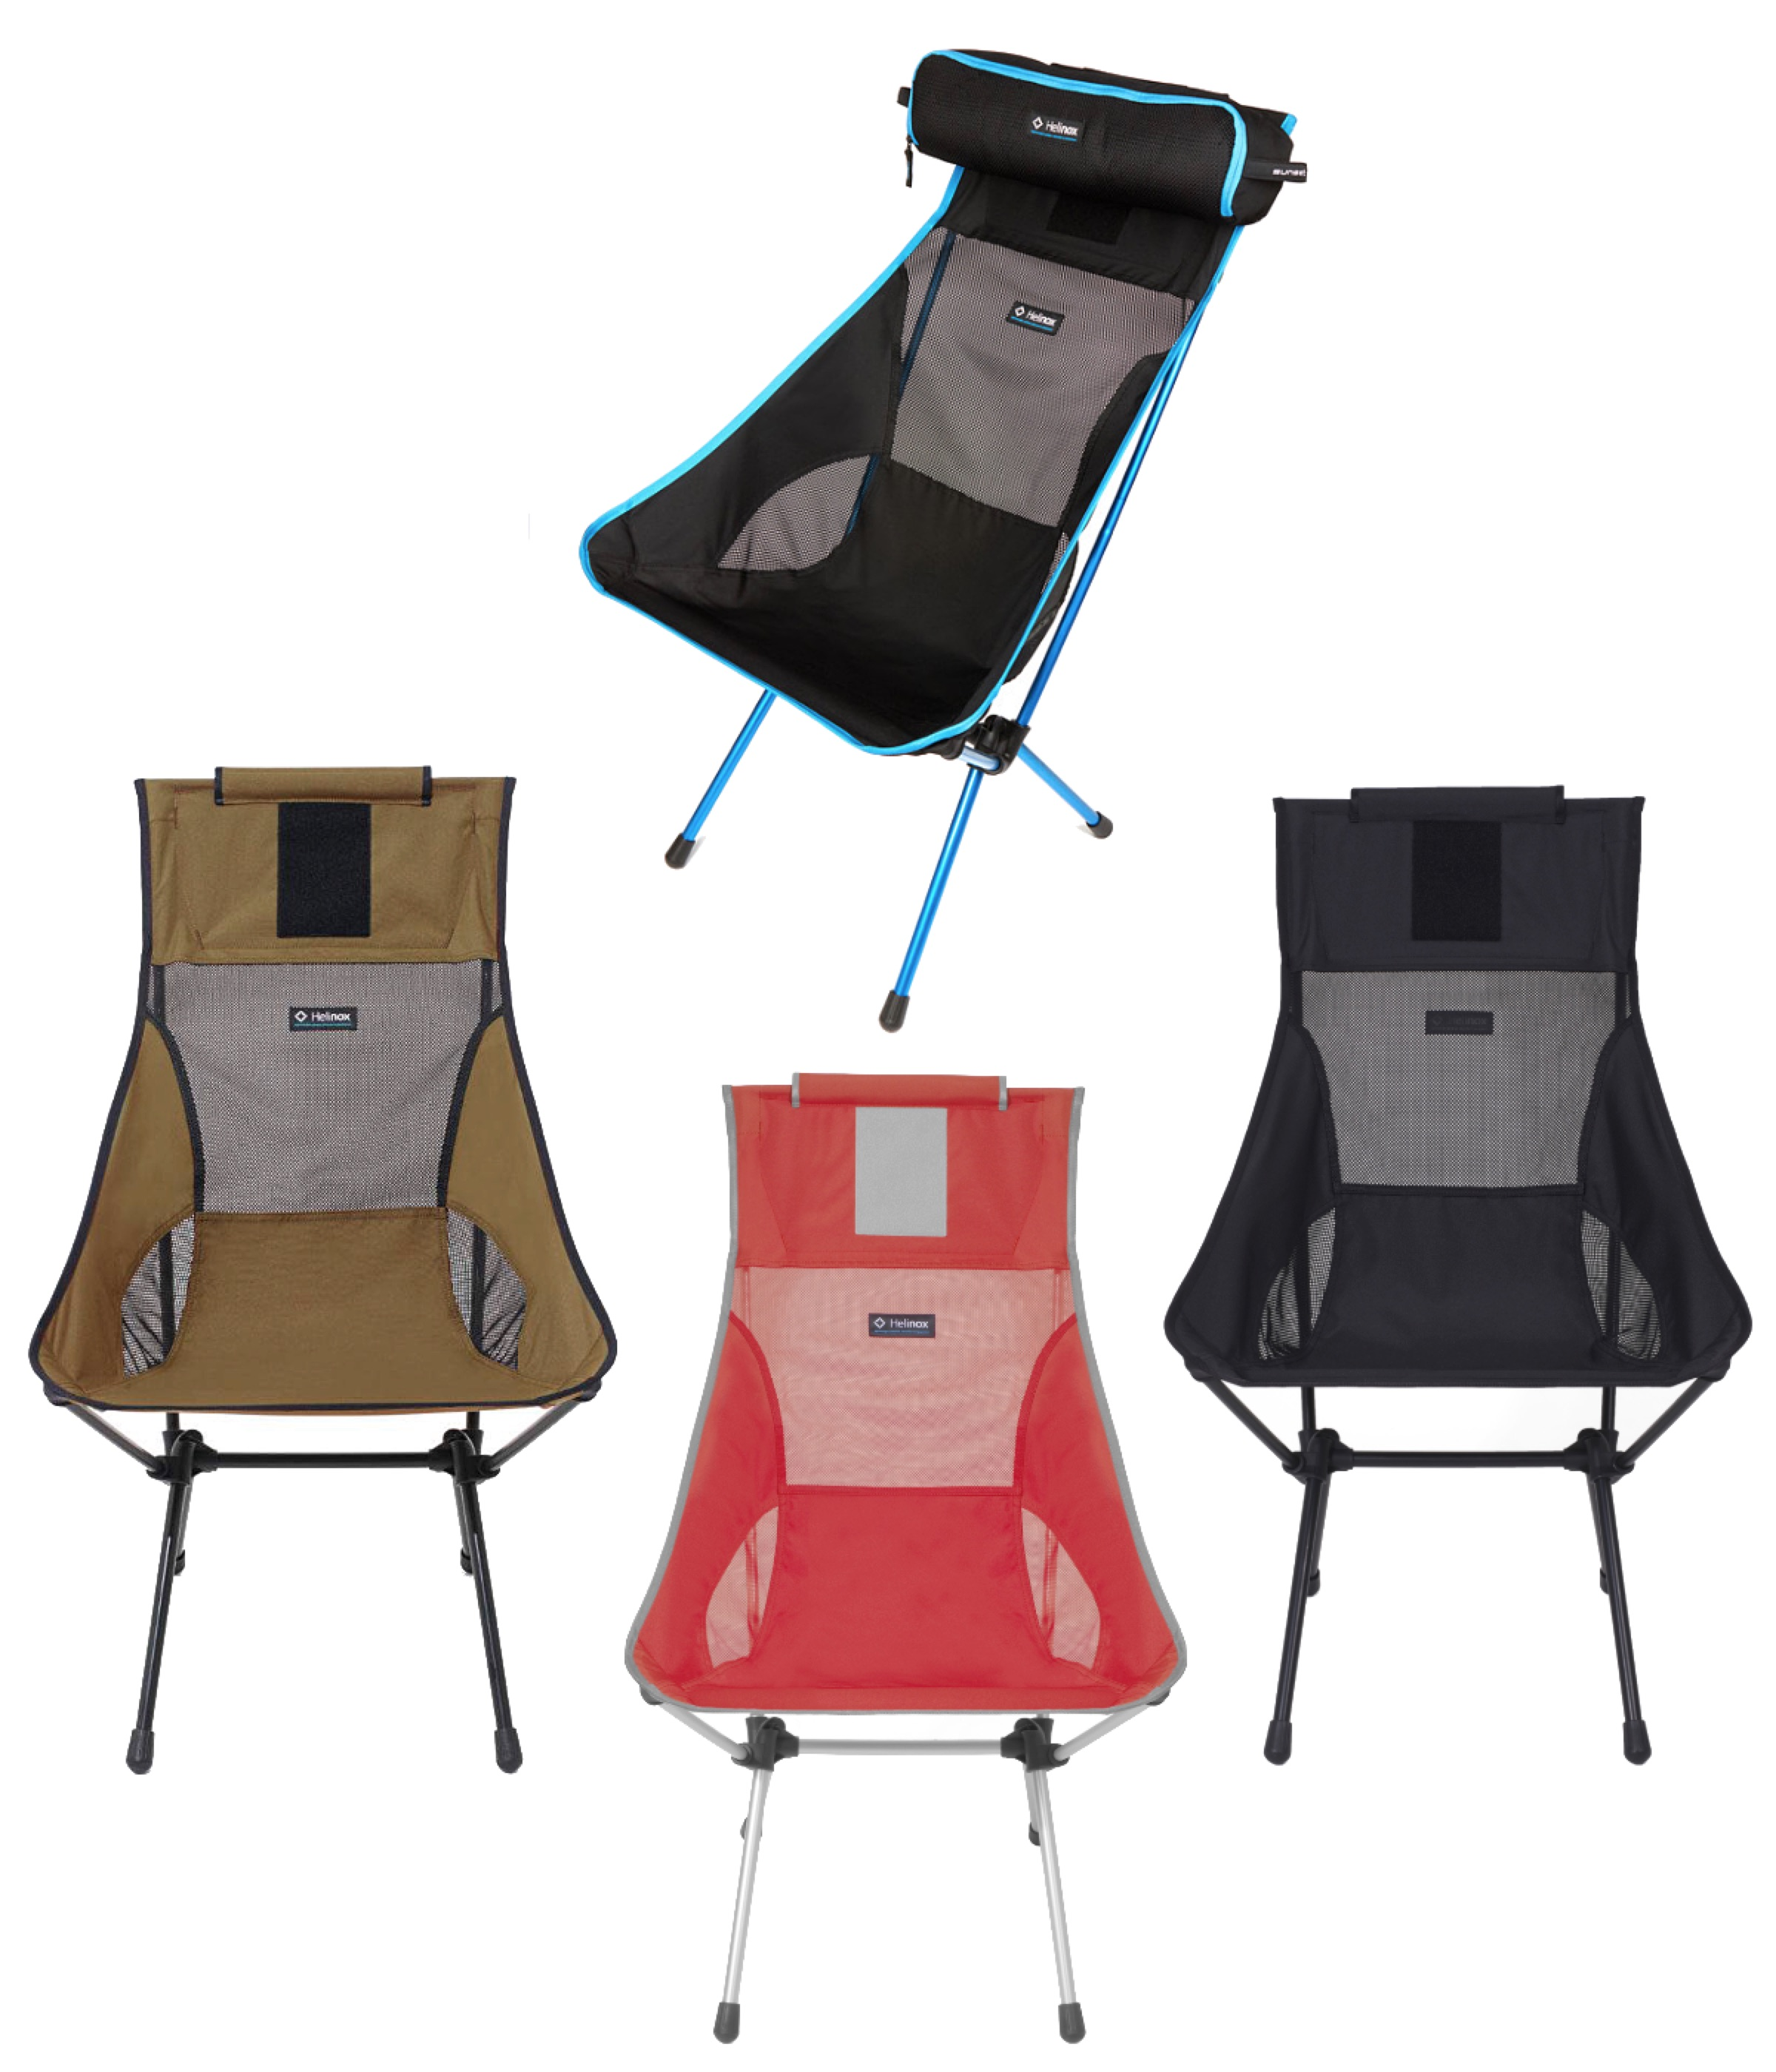 Helinox Sunset Chair.Helinox Sunset Chair Lightweight Compact Camp Chair